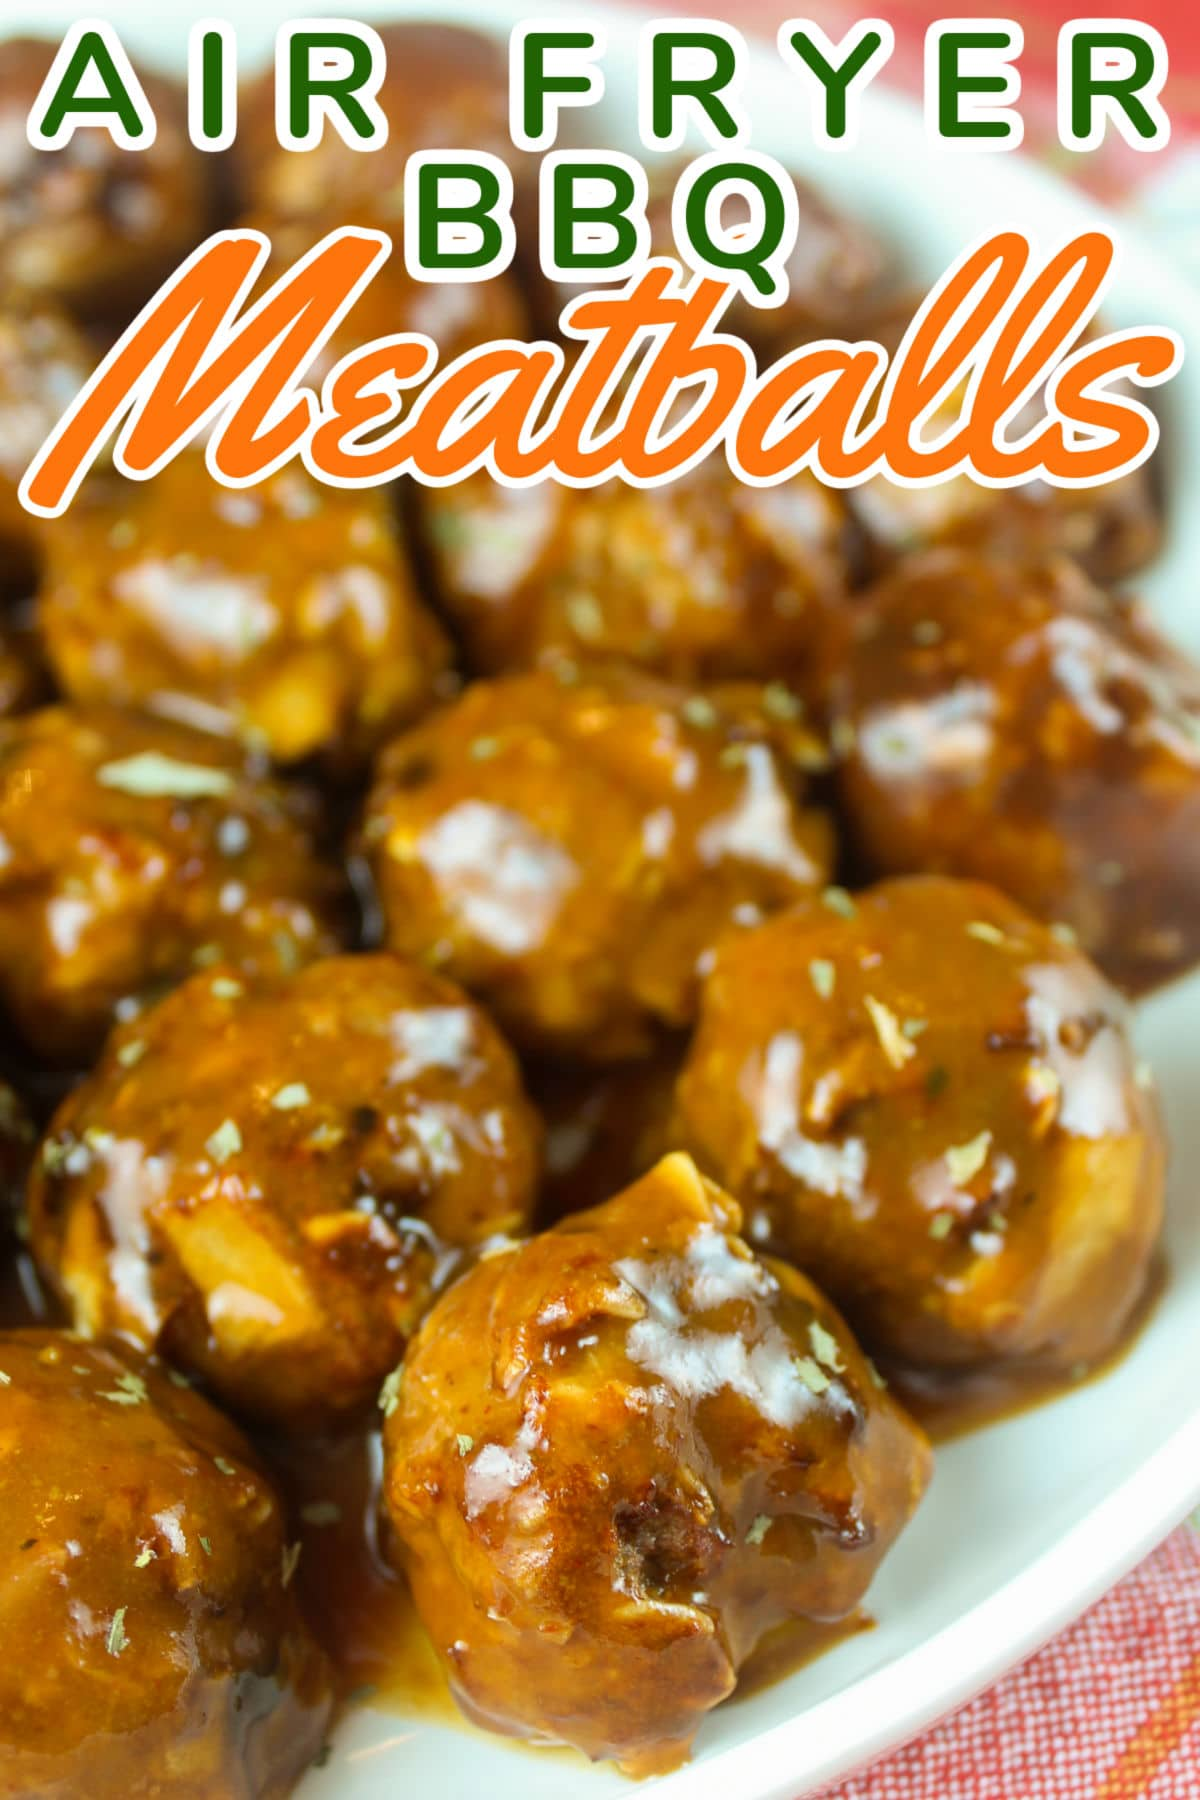 These Weight Watchers Meatballs are super healthy and range from 0-2 points on Weight Watchers (depending on your plan)! You wouldn't think something like BBQ Meatballs could be healthy! These are great on top of cauliflower rice or straight up with a toothpick and fresh veggies!  via @foodhussy